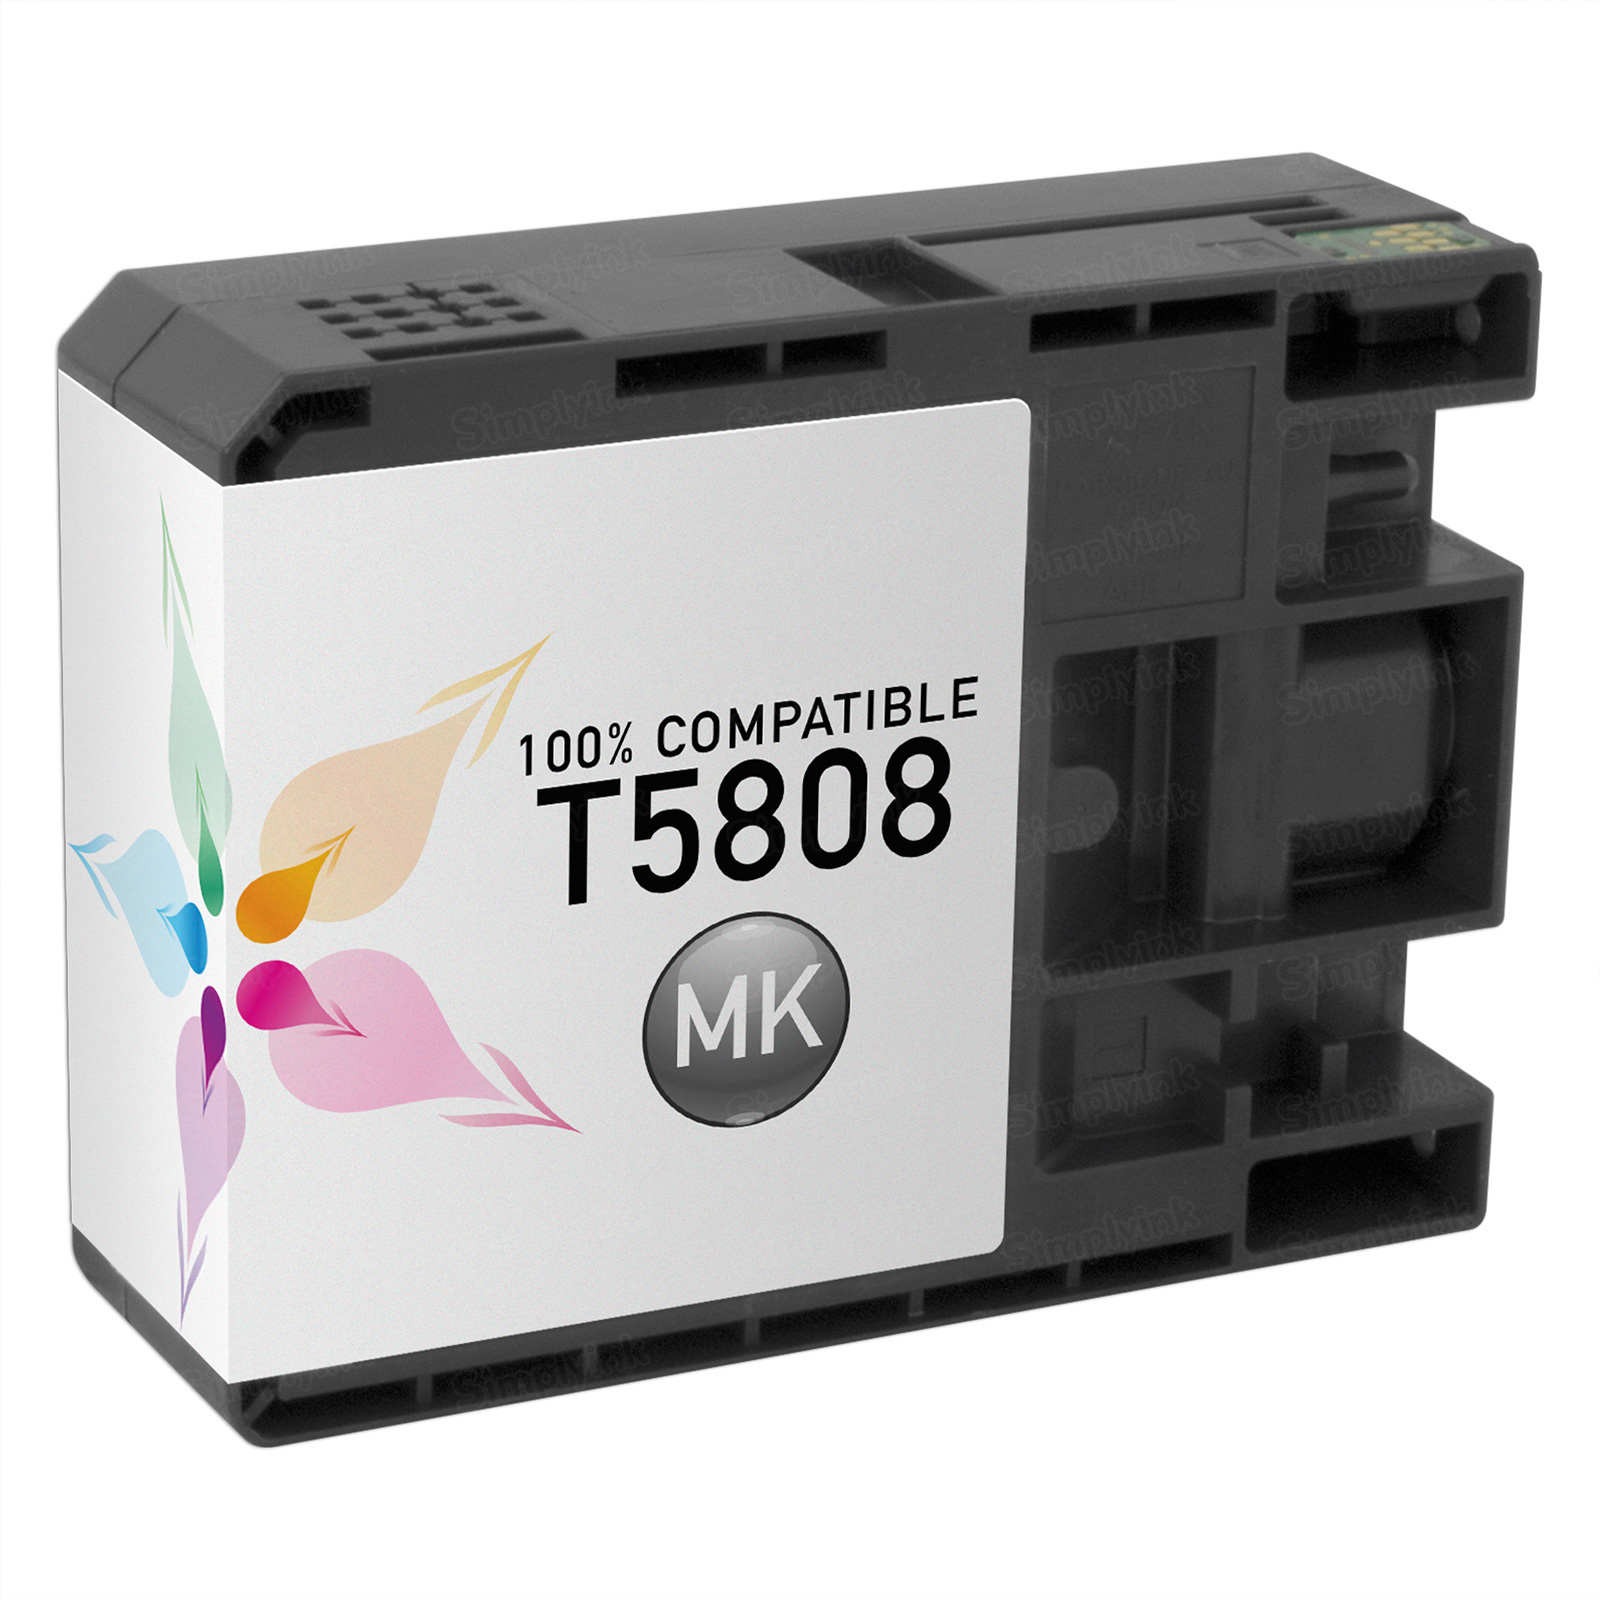 Epson Compatible T580800 Matte Black Inkjet Cartridge for the Stylus Pro 3800